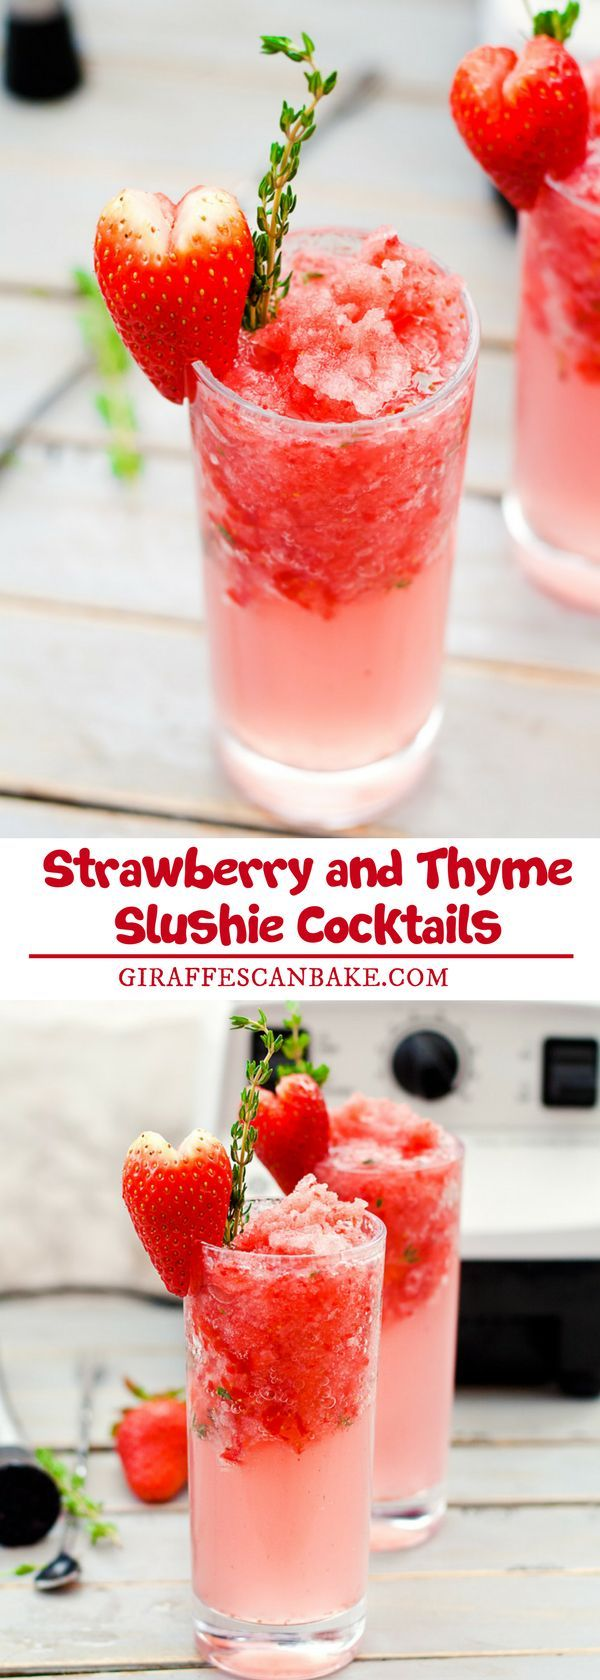 Are you looking for some easy cocktail recipe? These Strawberry and Thyme Slushie Cocktails are not only gorgeous, they're totally delicious too. Sweet strawberries are muddled with aromatic thyme and white rum, add some crushed strawberry ice and soda water and you have the perfect Valentine's Day cocktail to share with your sweetheart. #drinks #cocktails #valentinesday